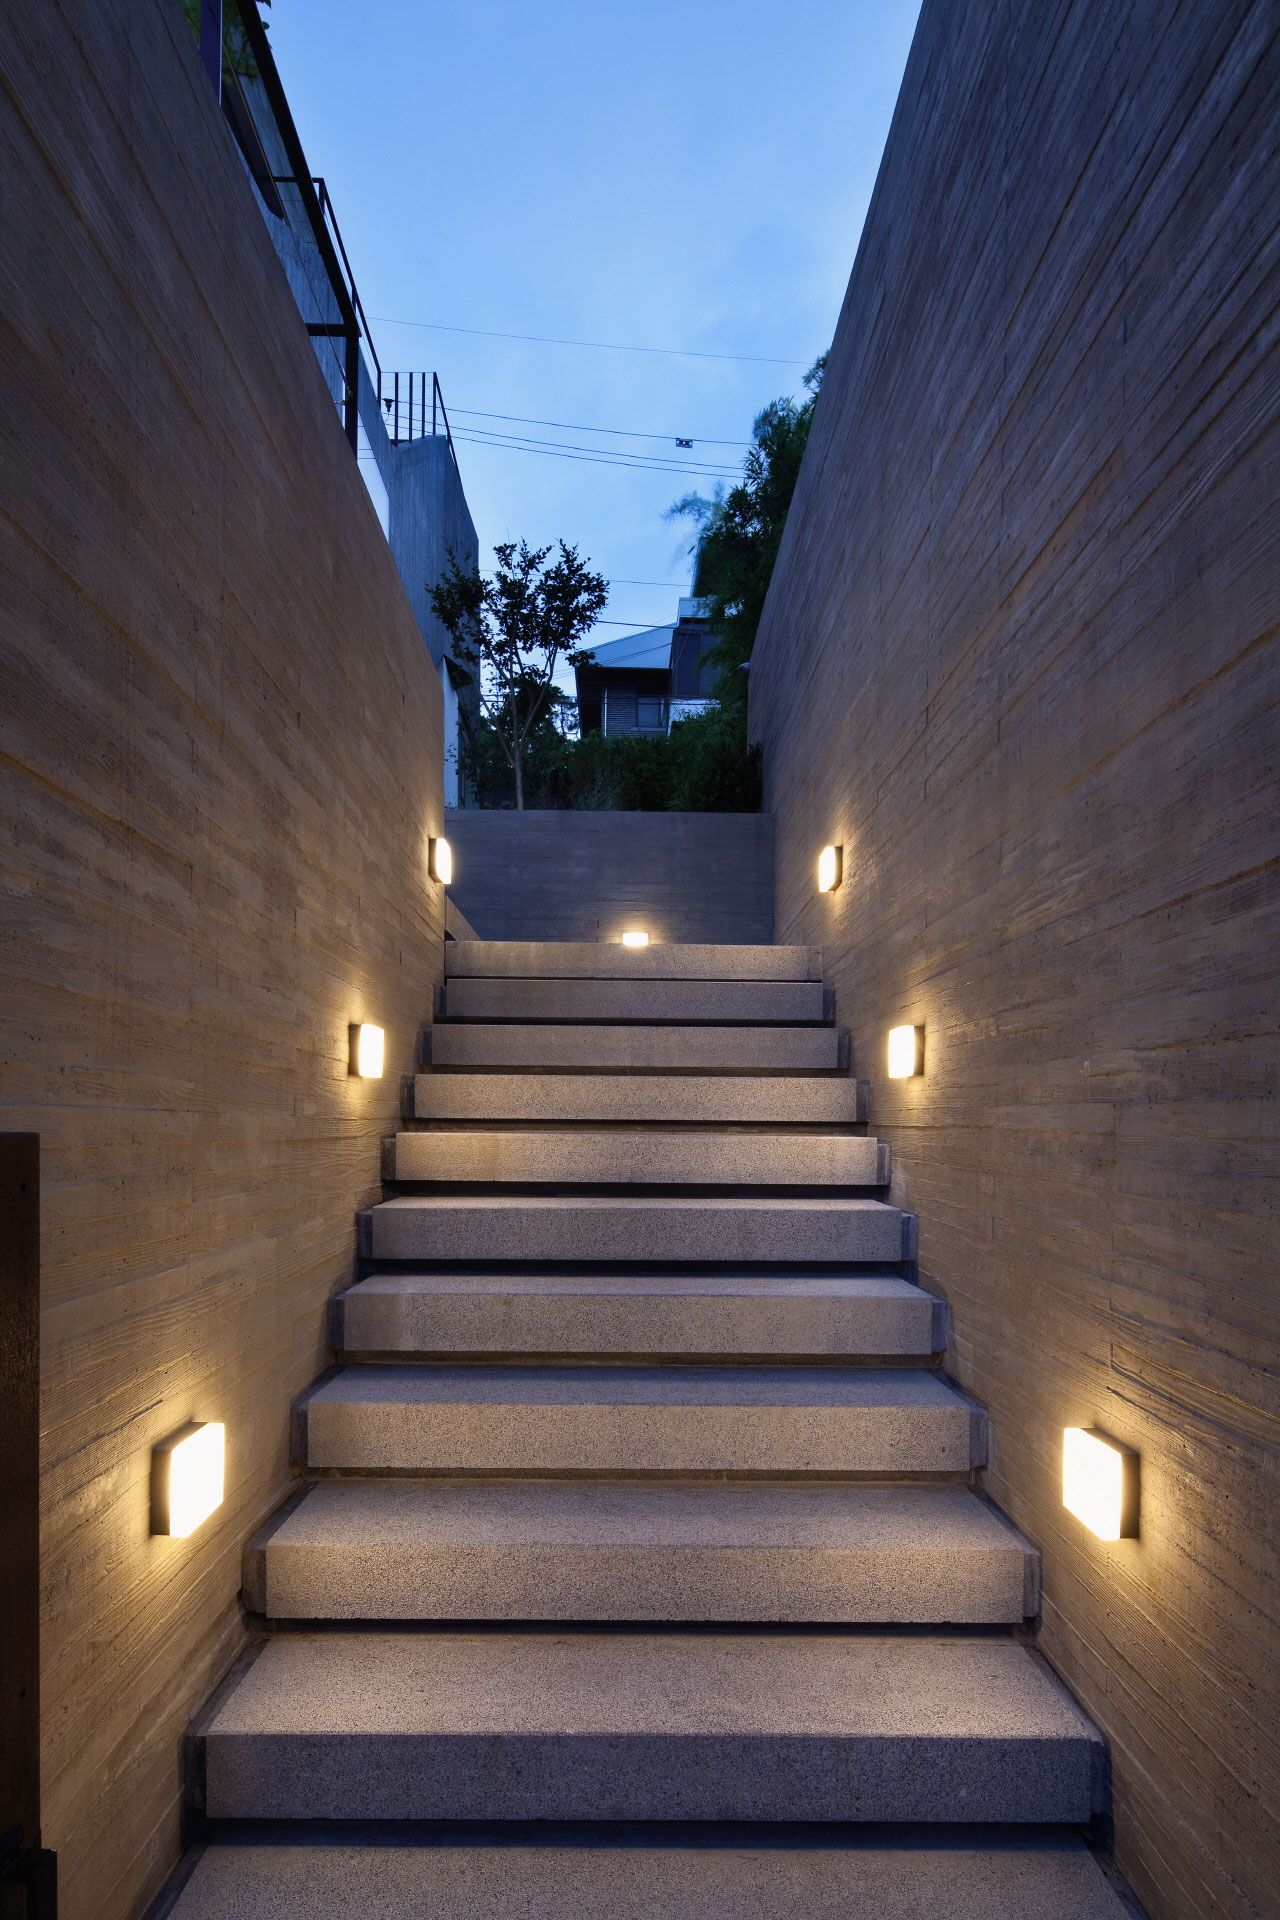 25 Modern Outdoor Design Ideas25 Modern Outdoor Design Ideas   Outdoor lighting  Modern and  . Outside Lighting Design. Home Design Ideas